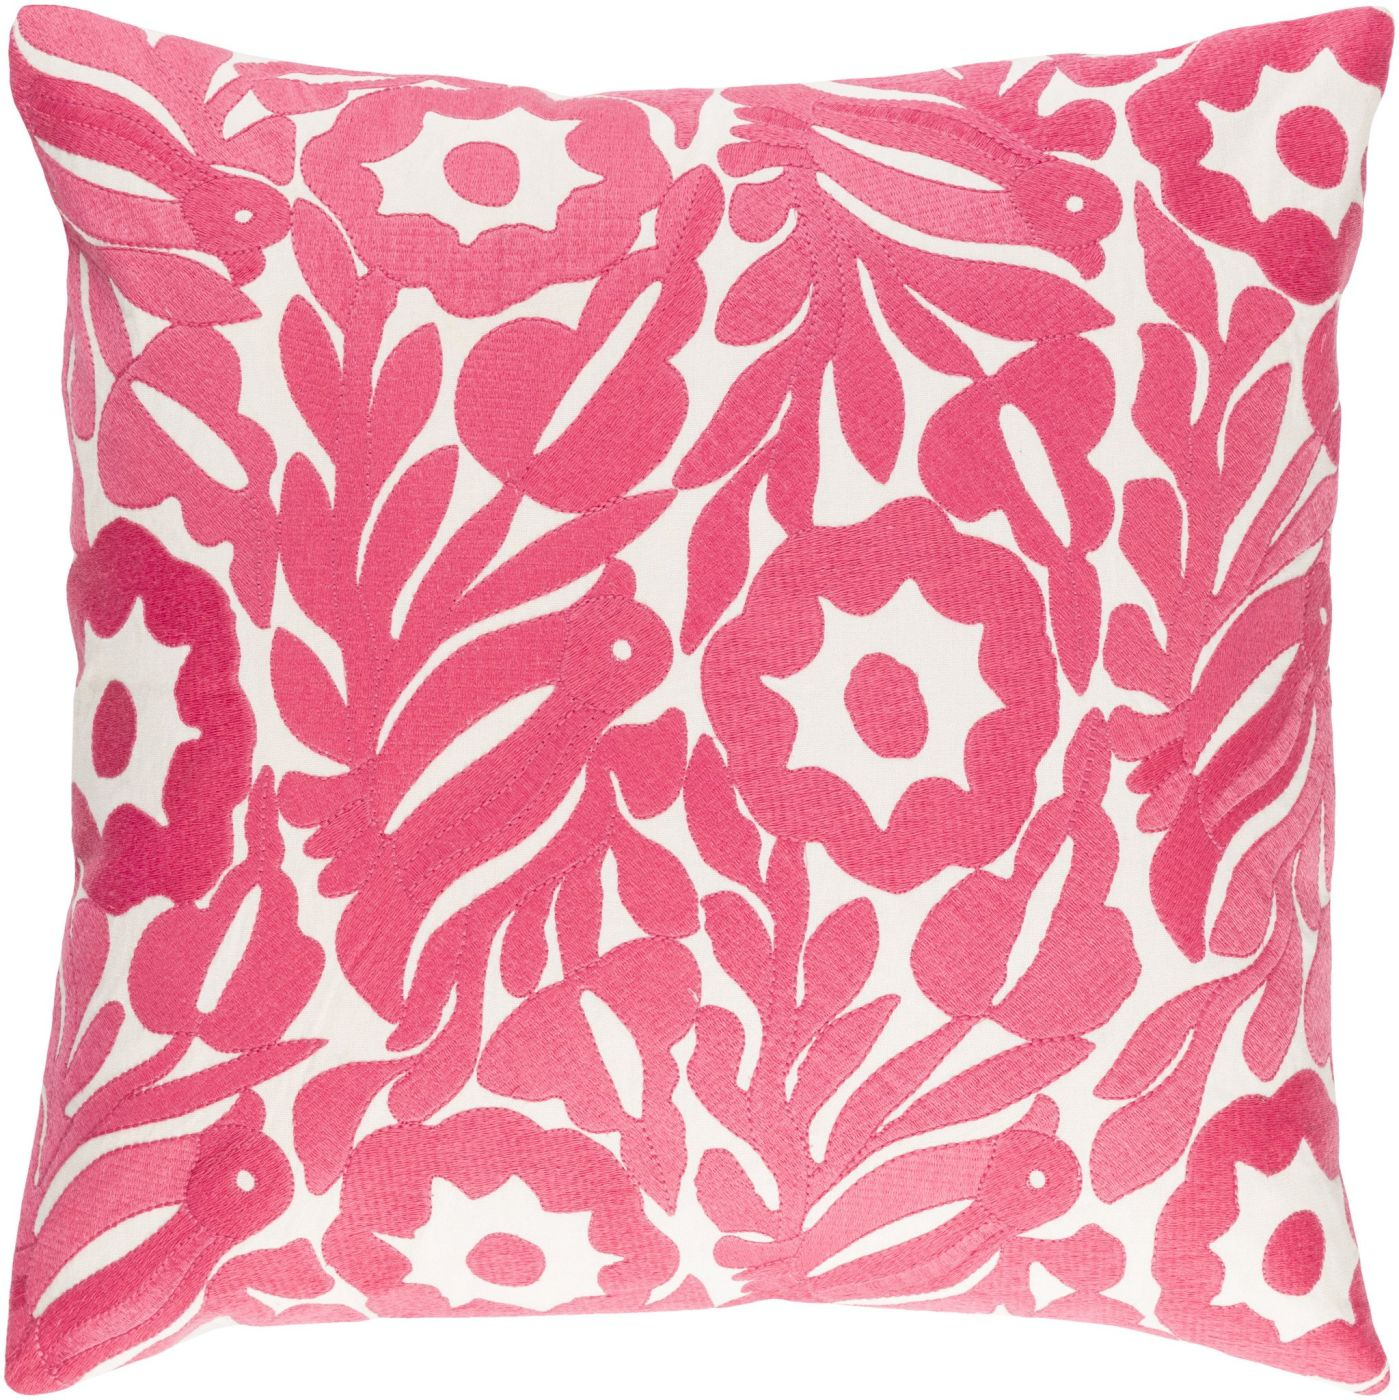 Surya Pallavi Throw Pillow Neutral, Pink PLV003-1818D. Only $72.00 at Contemporary Furniture ...